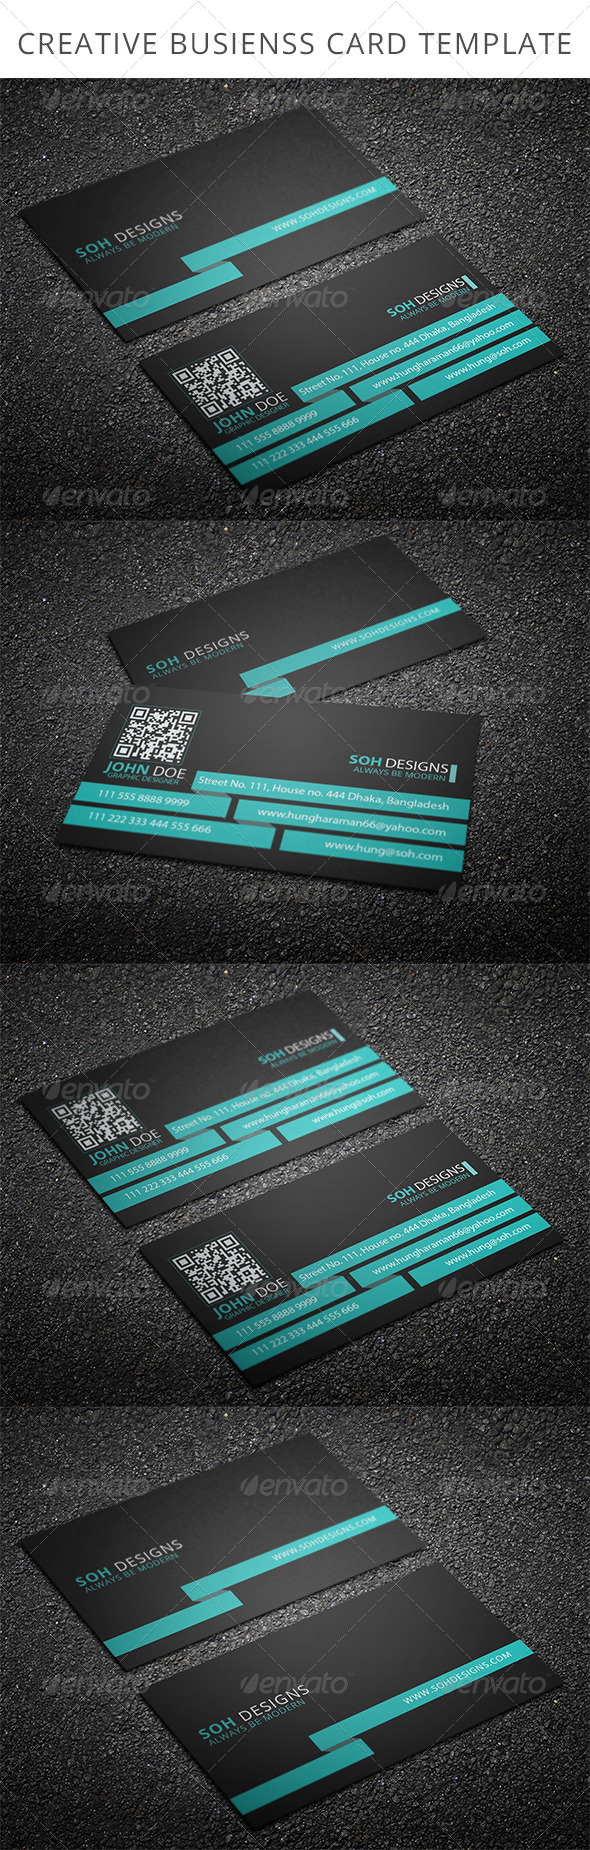 Corporate Business Card Template 3